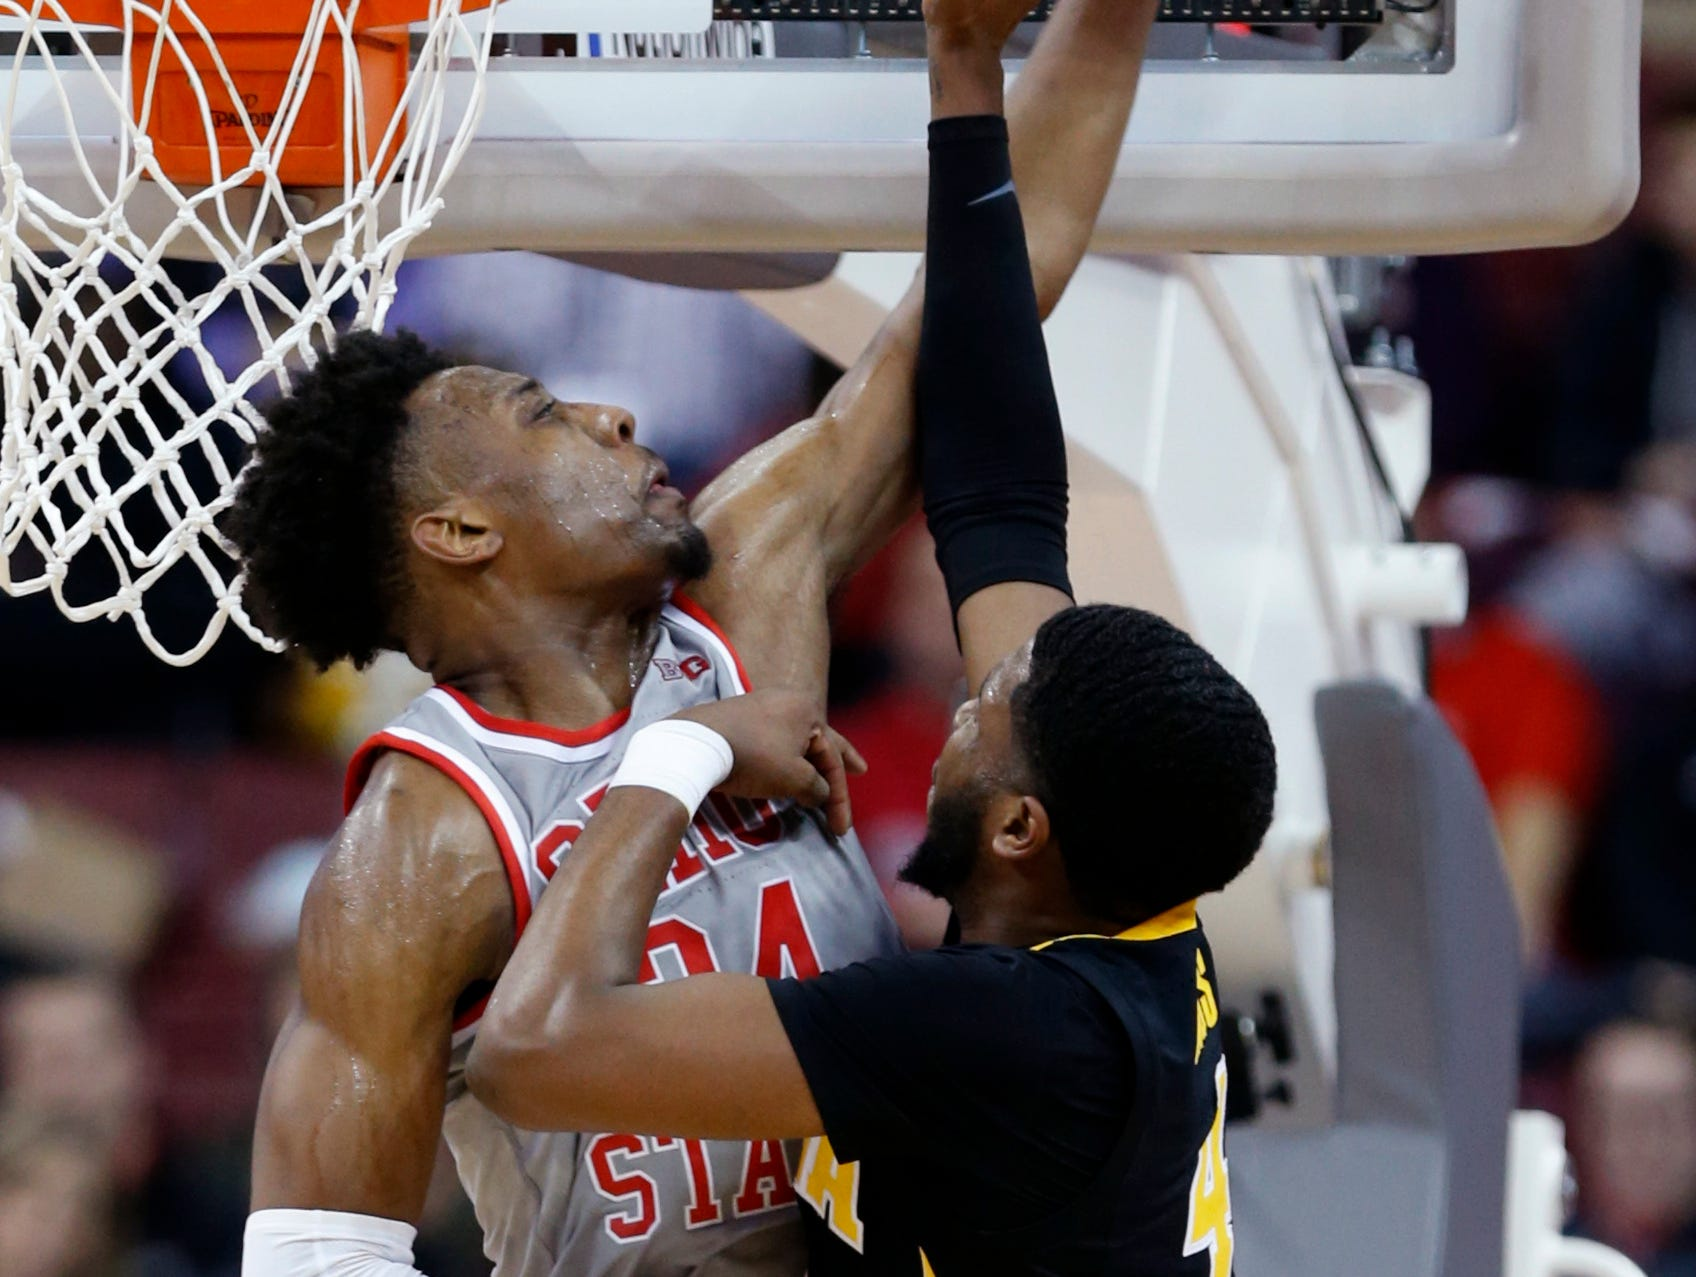 Ohio State forward Andre Wesson, left, blocks a shot by Iowa guard Isaiah Moss during the second half of an NCAA college basketball game in Columbus, Ohio, Tuesday, Feb. 26, 2019. Ohio State won 90-70.